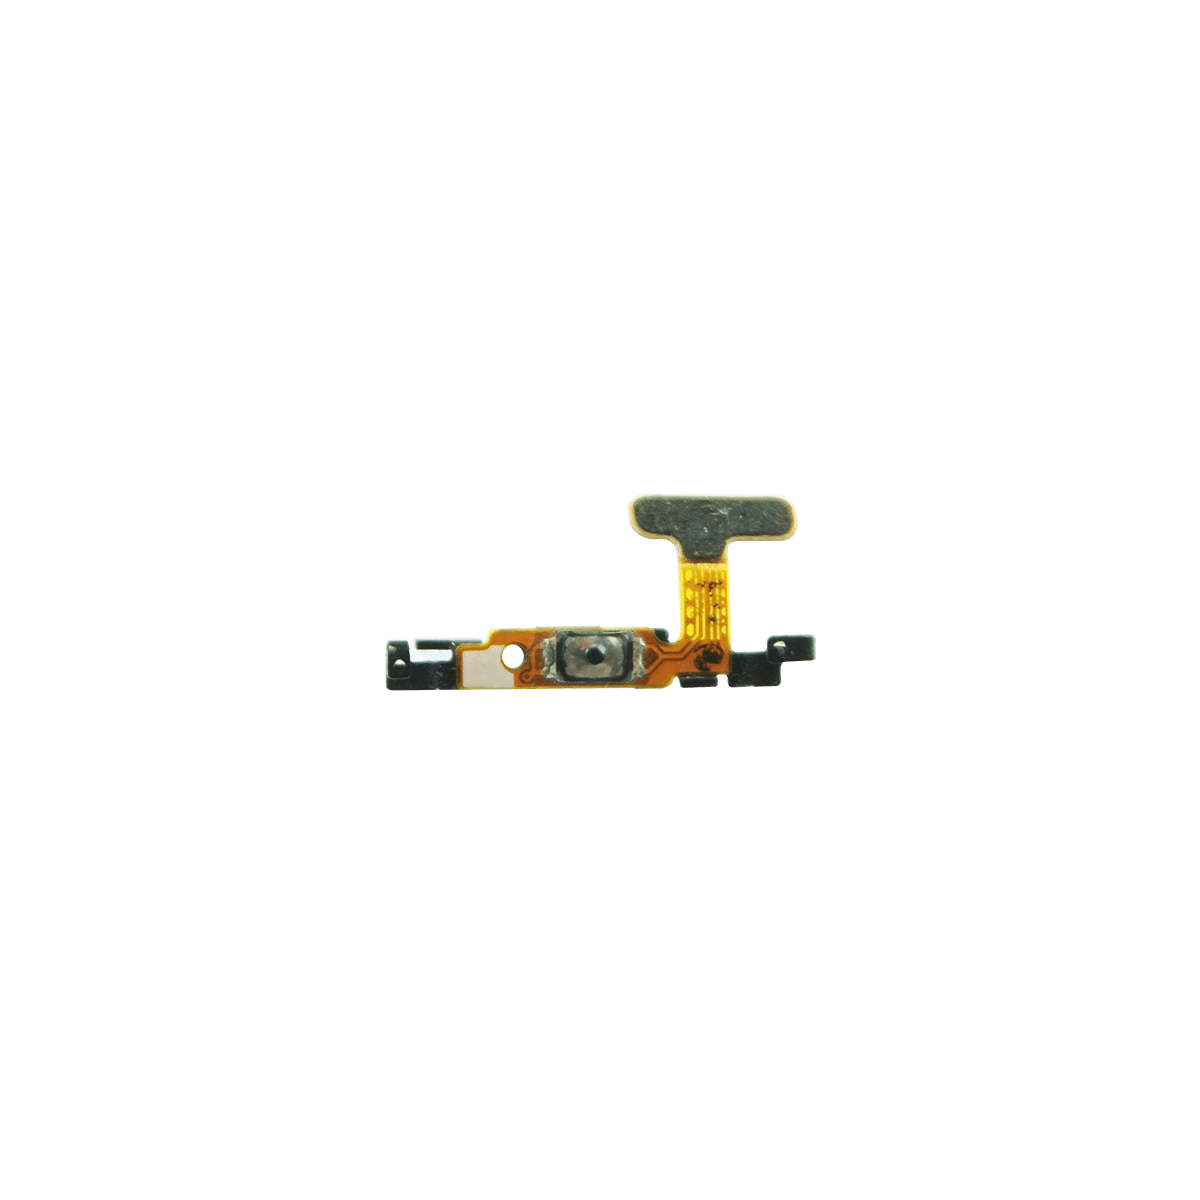 Samsung Galaxy S6 Edge Power Button Flex Cable Replacement